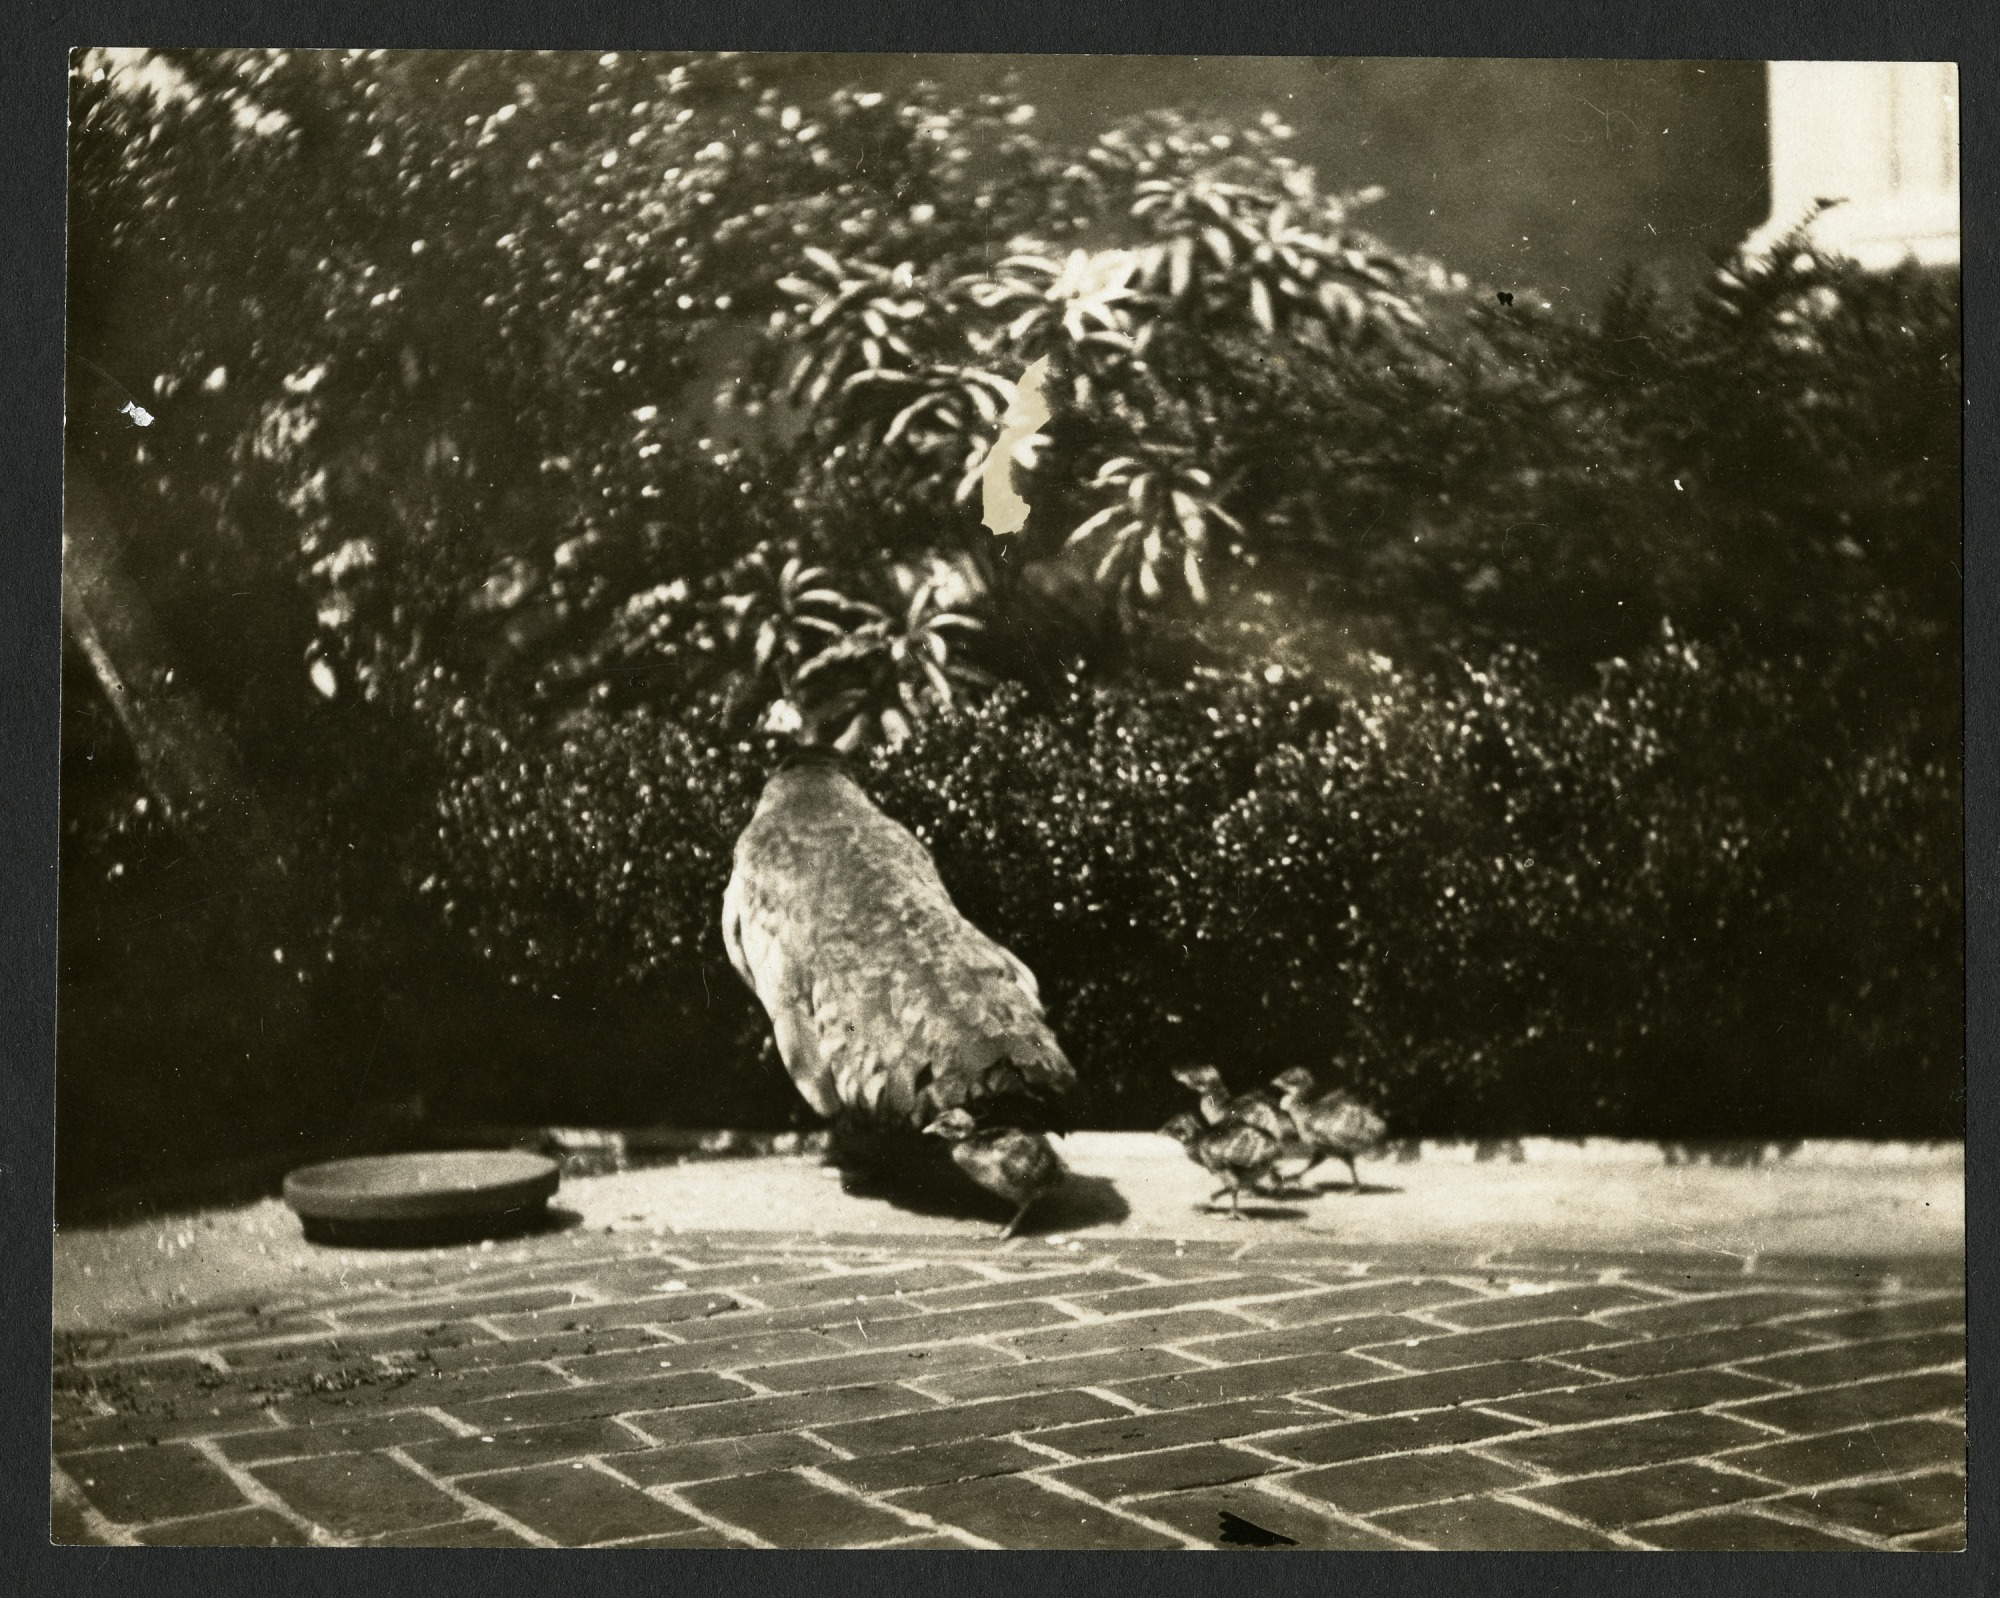 Peacock and Babies in the Freer Gallery of Art Courtyard